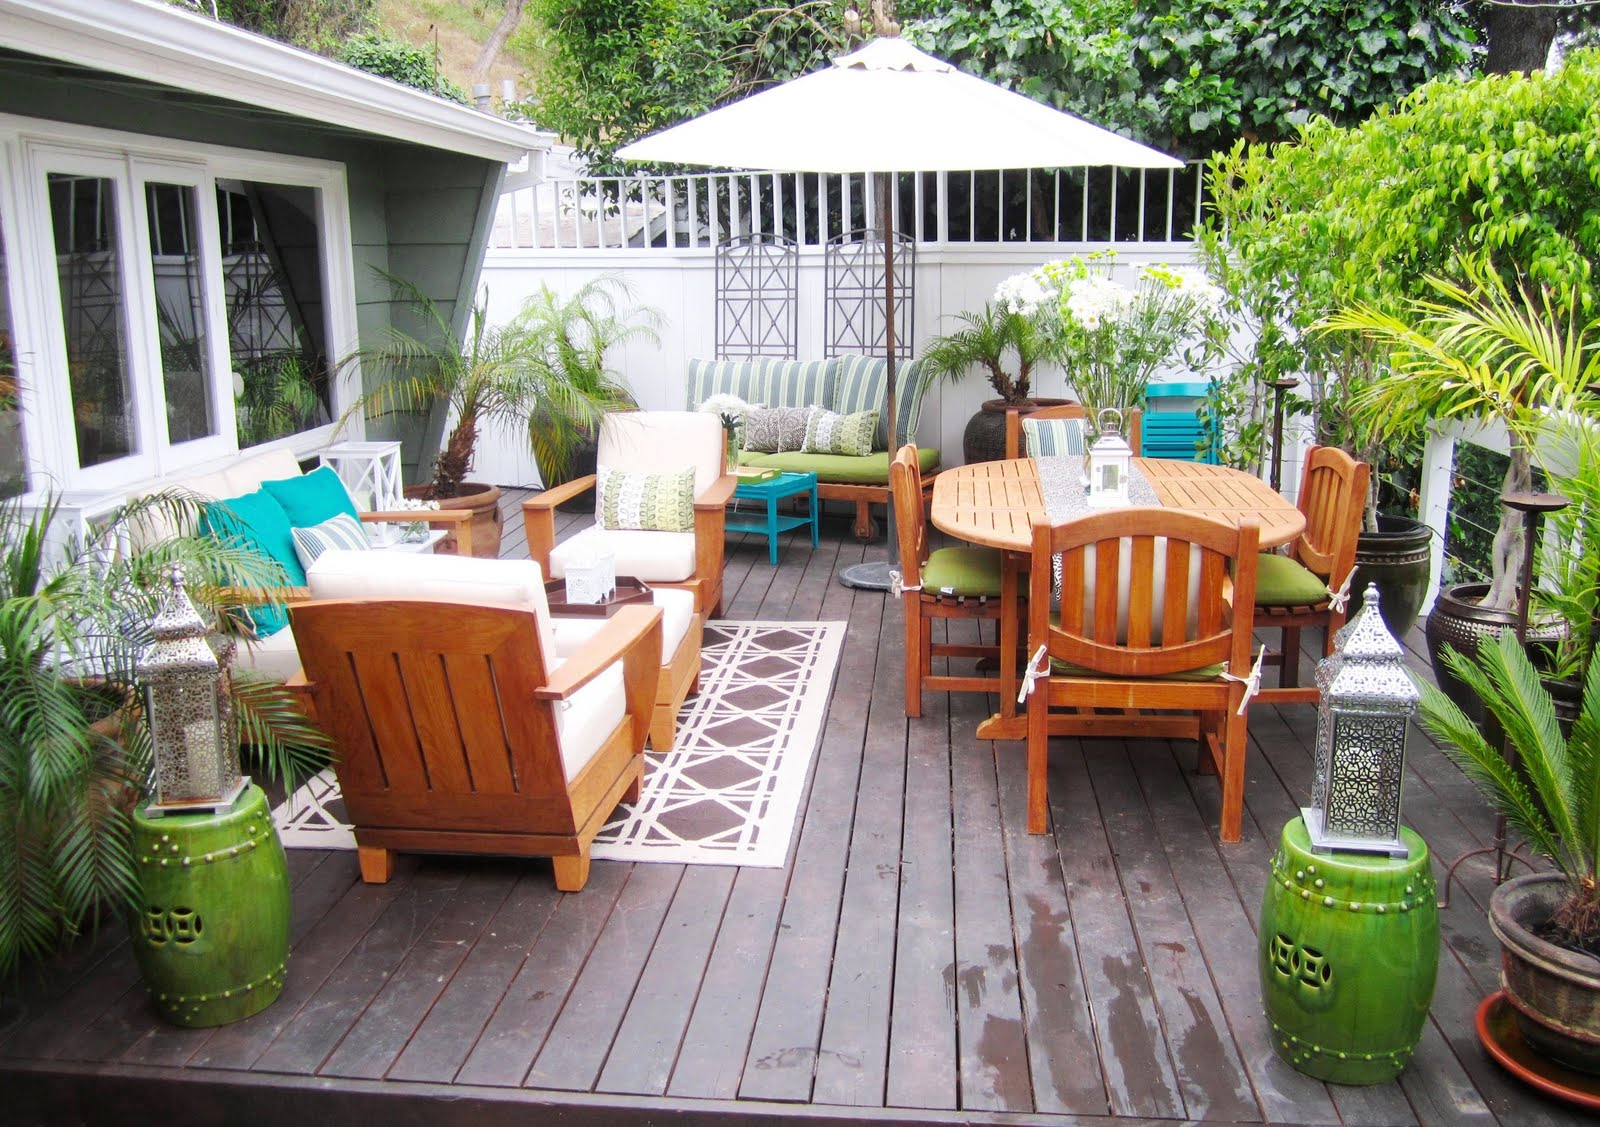 Deck decor images